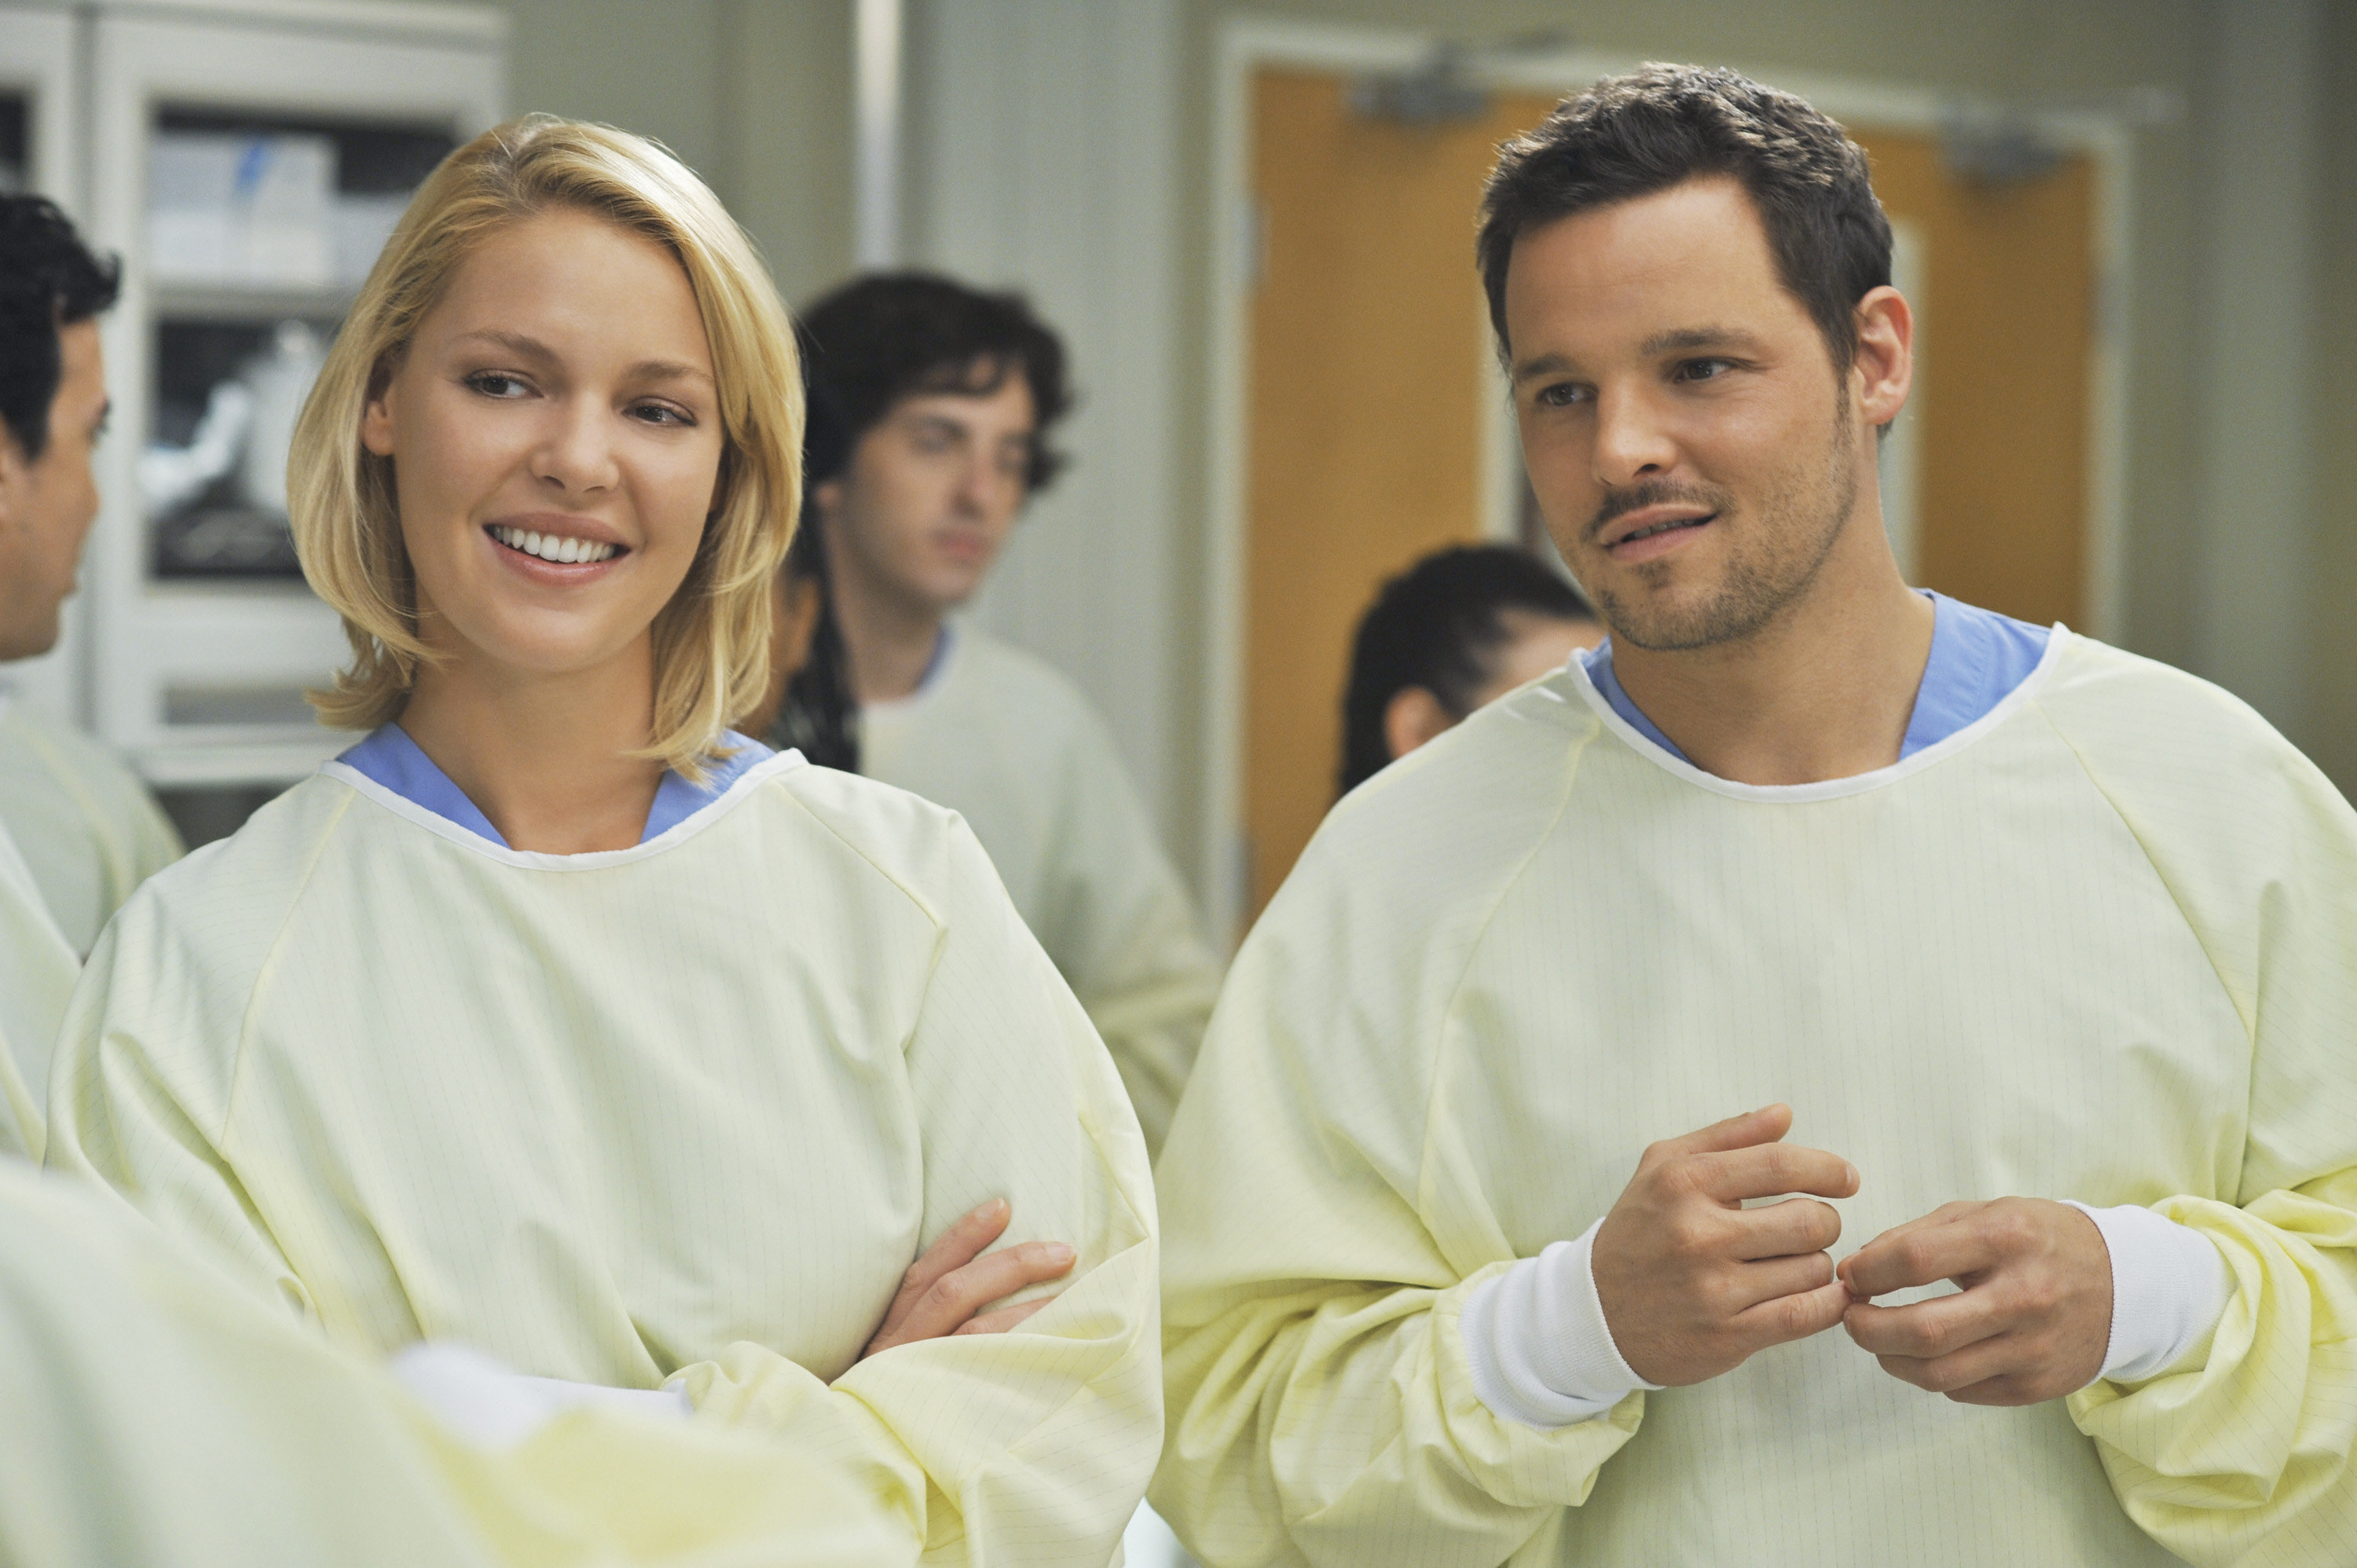 Heigl stands with her arms crossed next to another actor while wearing OR scrubs